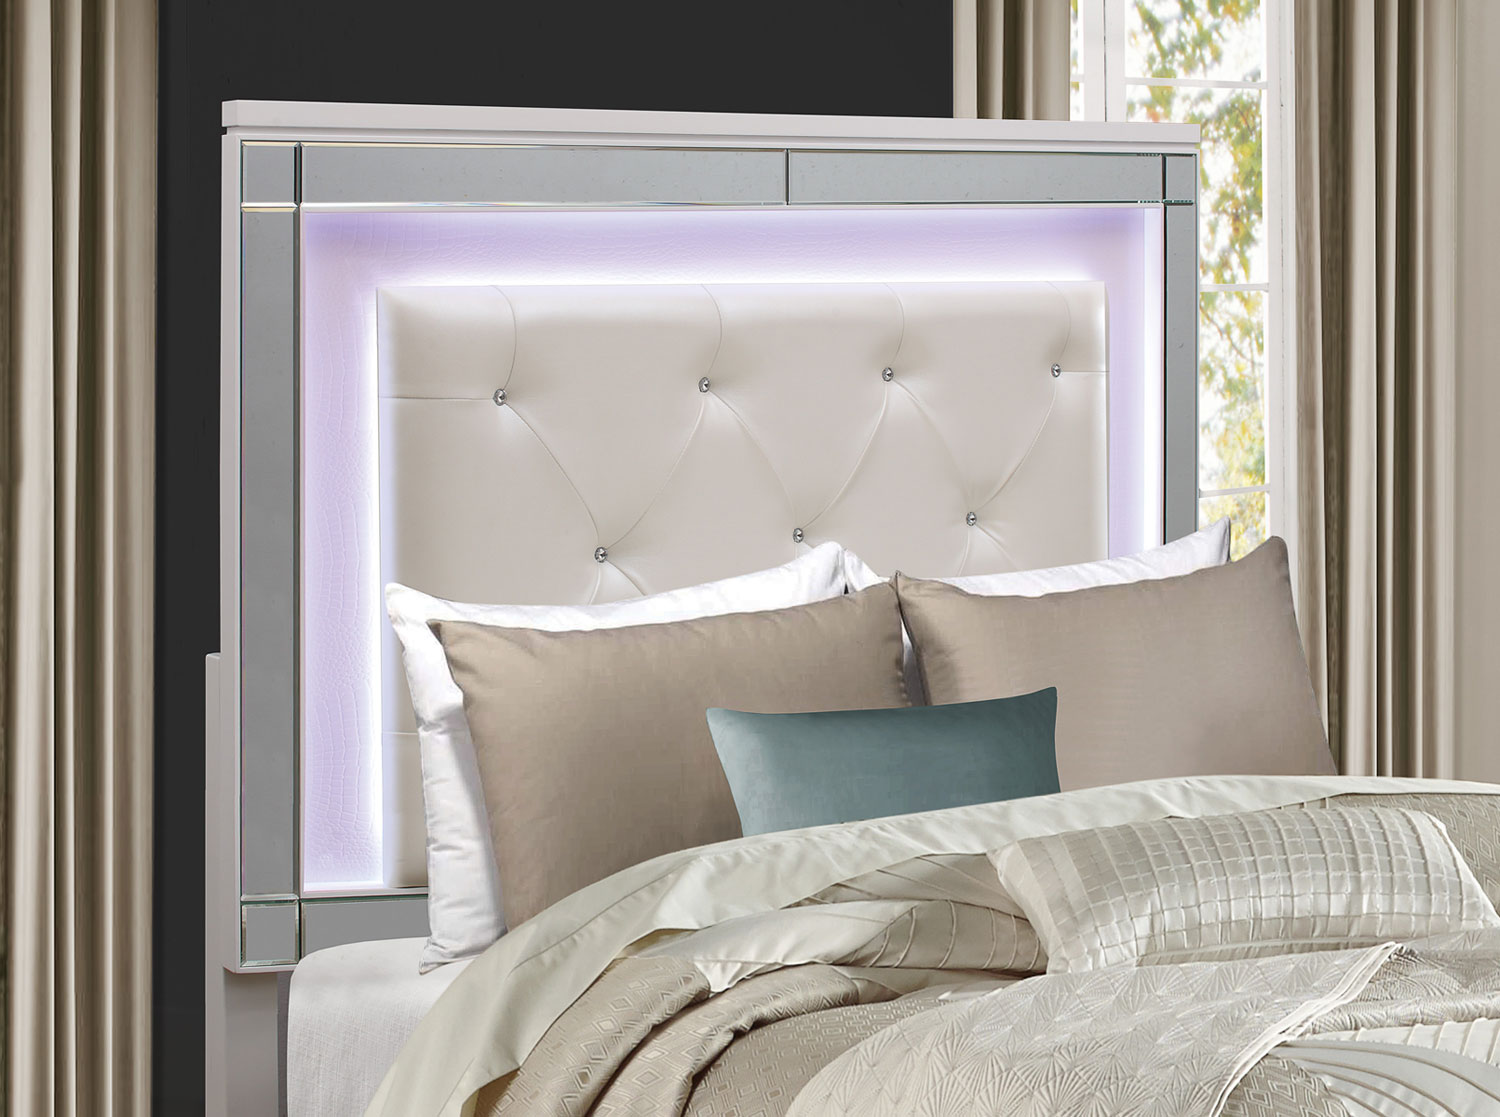 Homelegance Alonza Bedroom Set with LED Lighting - Brilliant White ...